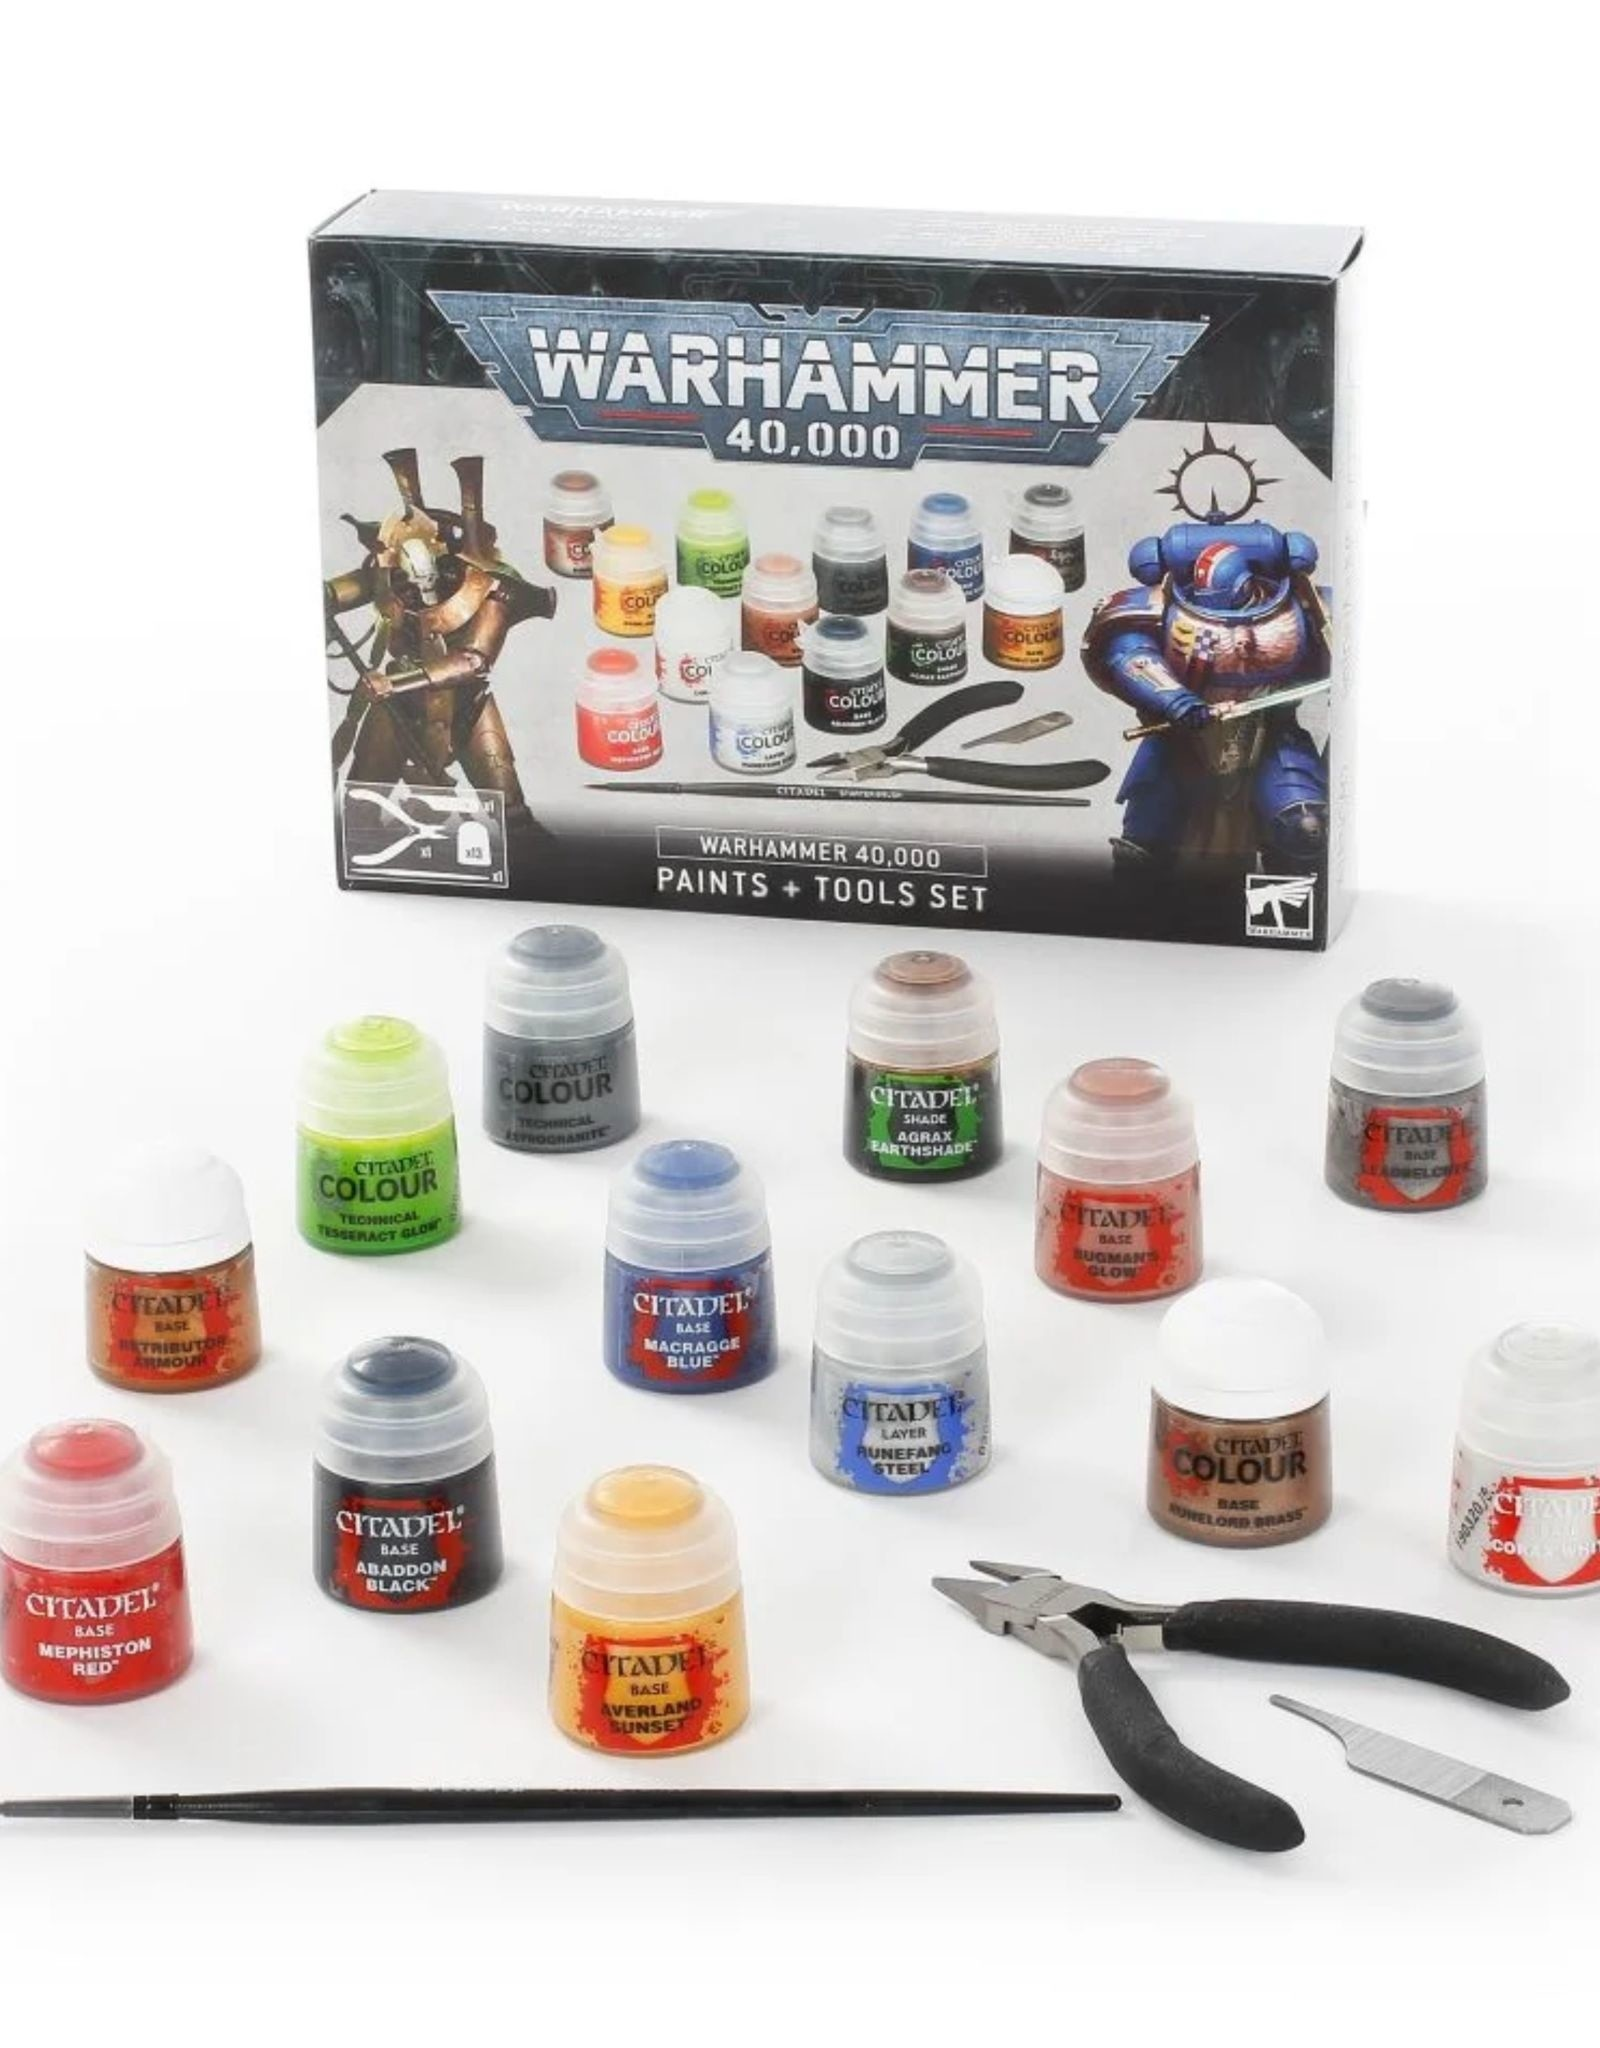 Warhammer 40k Citadel 40k Paints & Tools